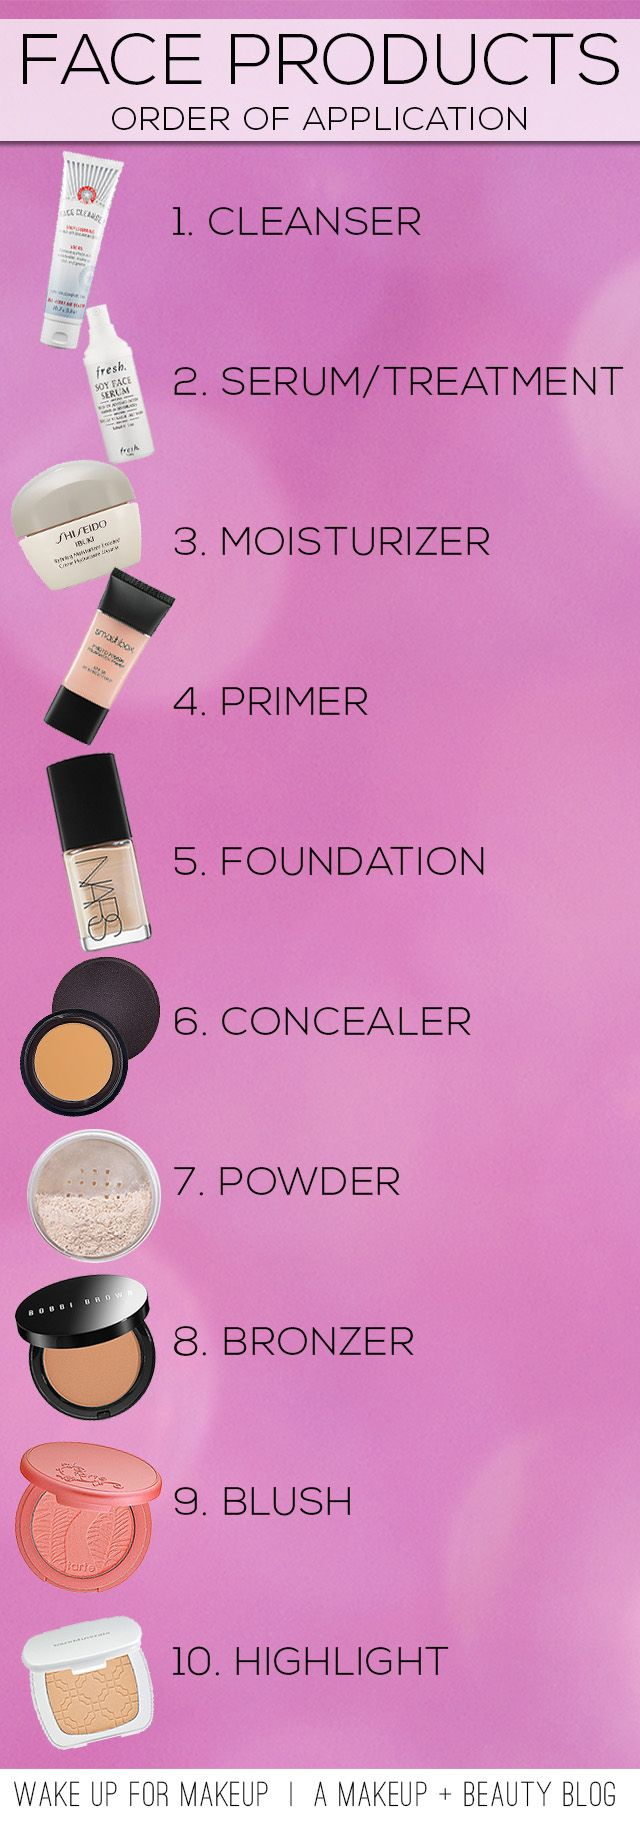 Photo - Face Products: order of application                                                                                                                                                                                 More                                                                                                                                                                                 More